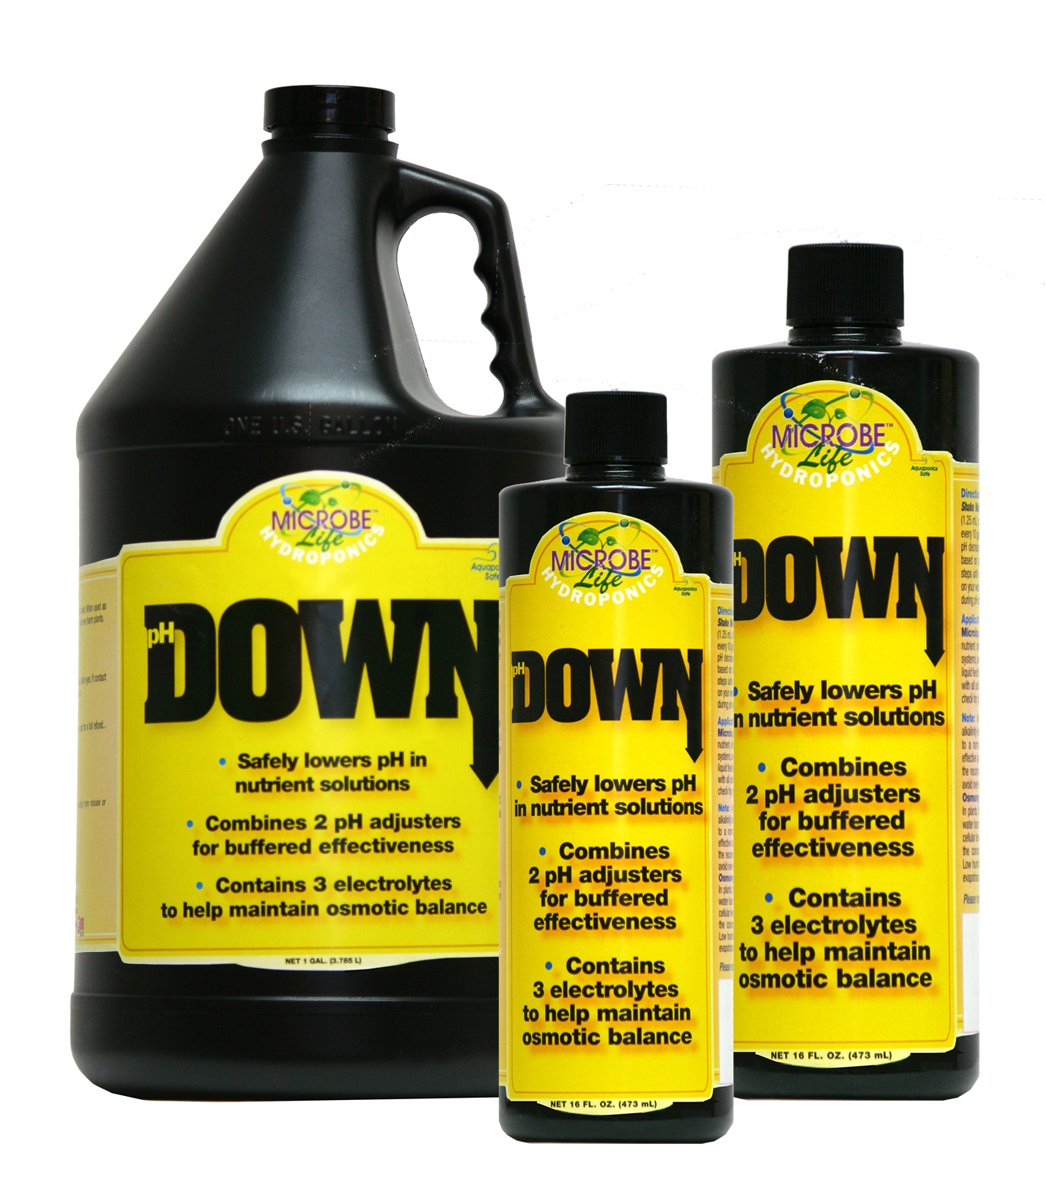 MICROBE Life Hydroponics pH Down Gallon by Microbe Life Hydroponics (Image #1)